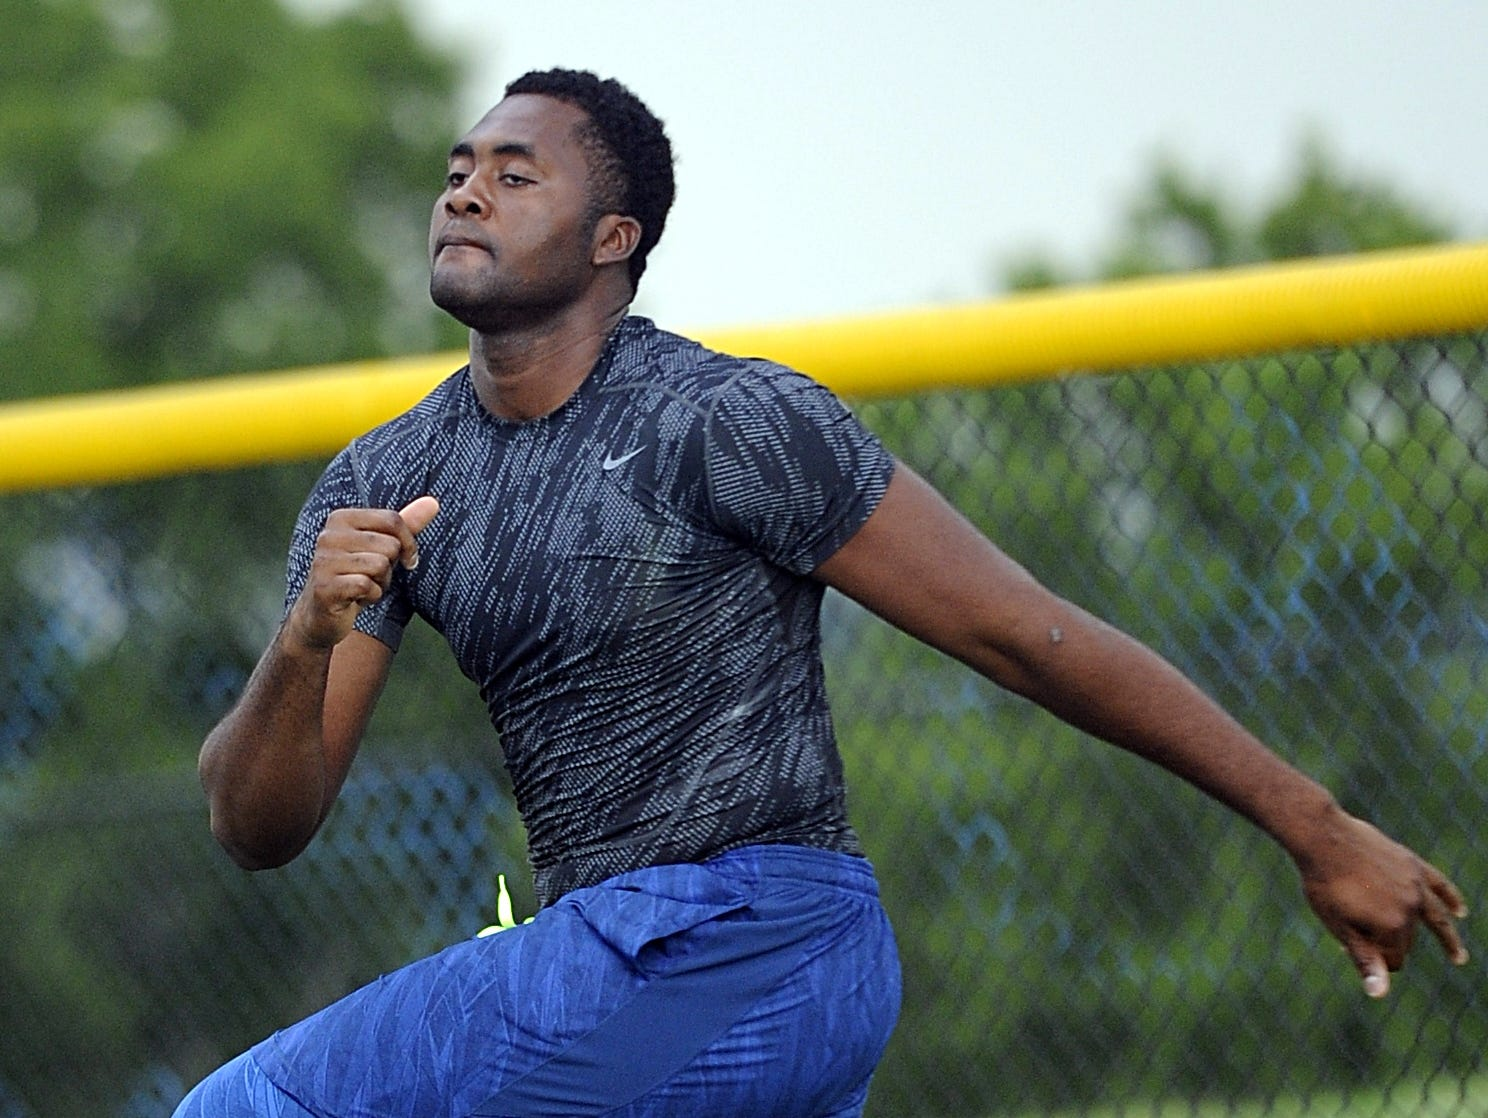 Davidson Academy senior Obinna Eze is No. 5 in this year's Dandy Dozen and has committed to Memphis.